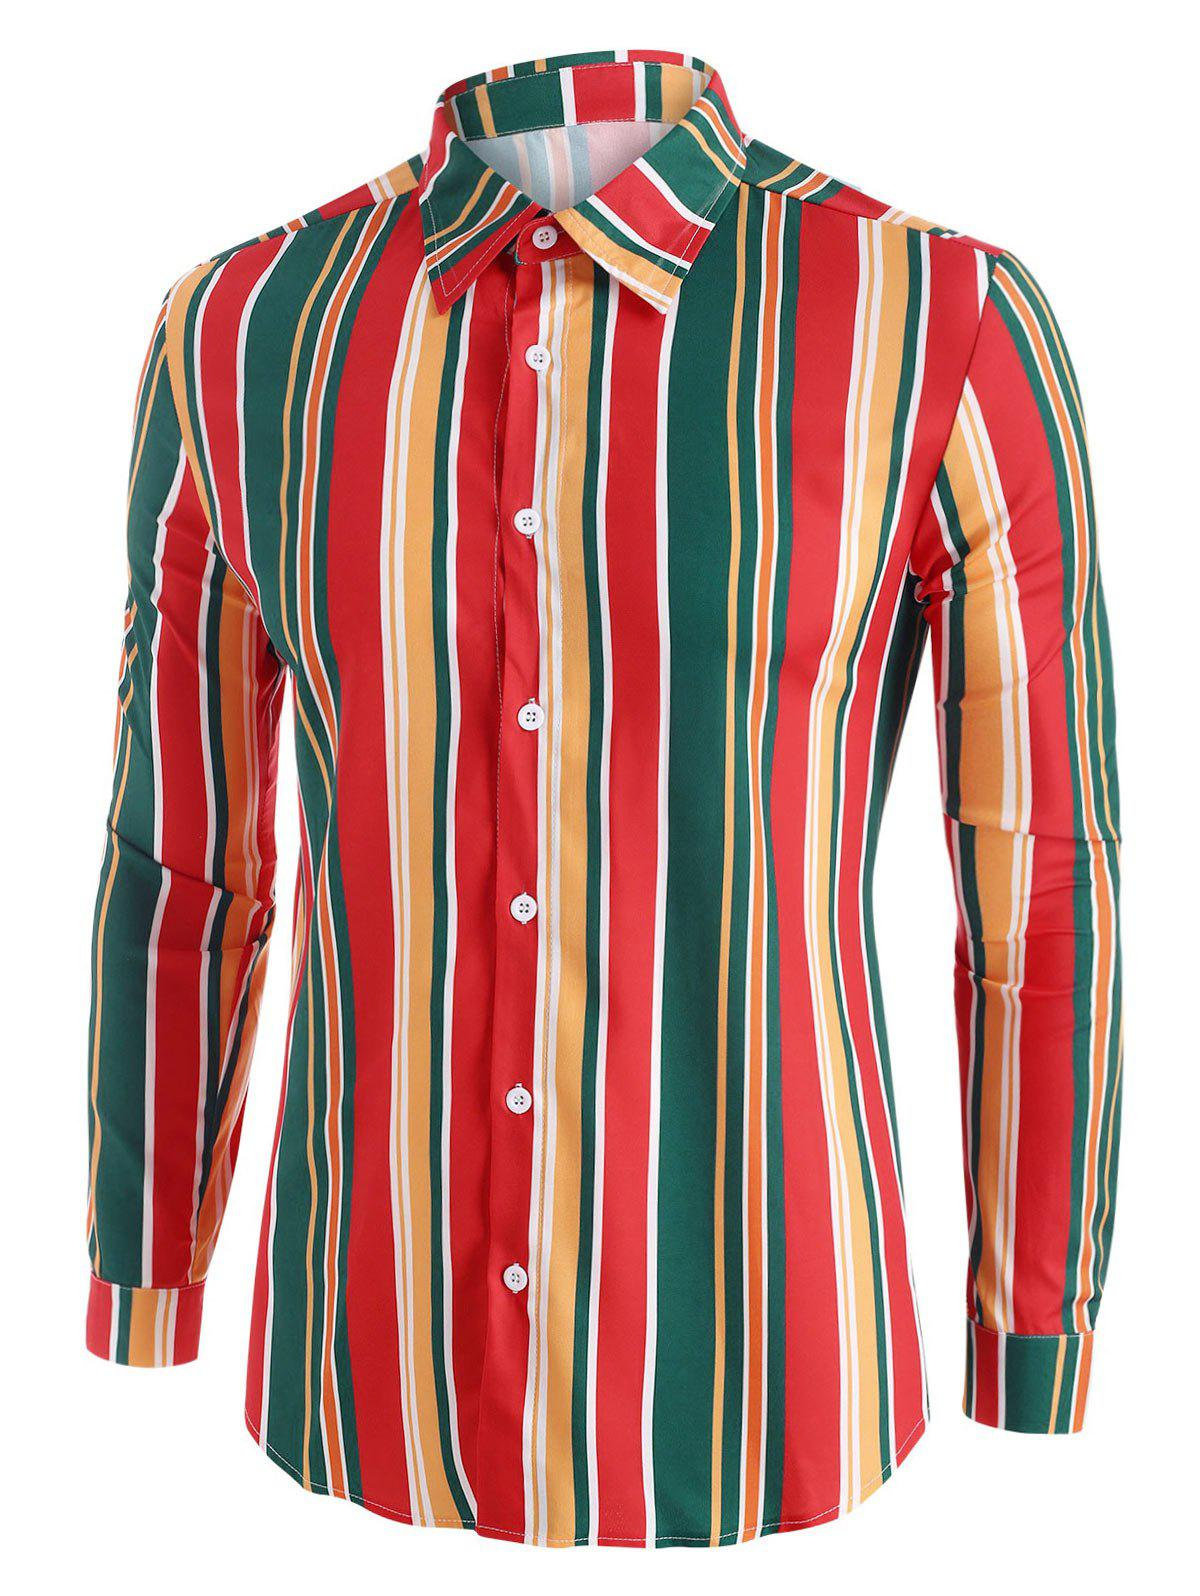 Shop Colorful Striped Button Up Long Sleeve Shirt